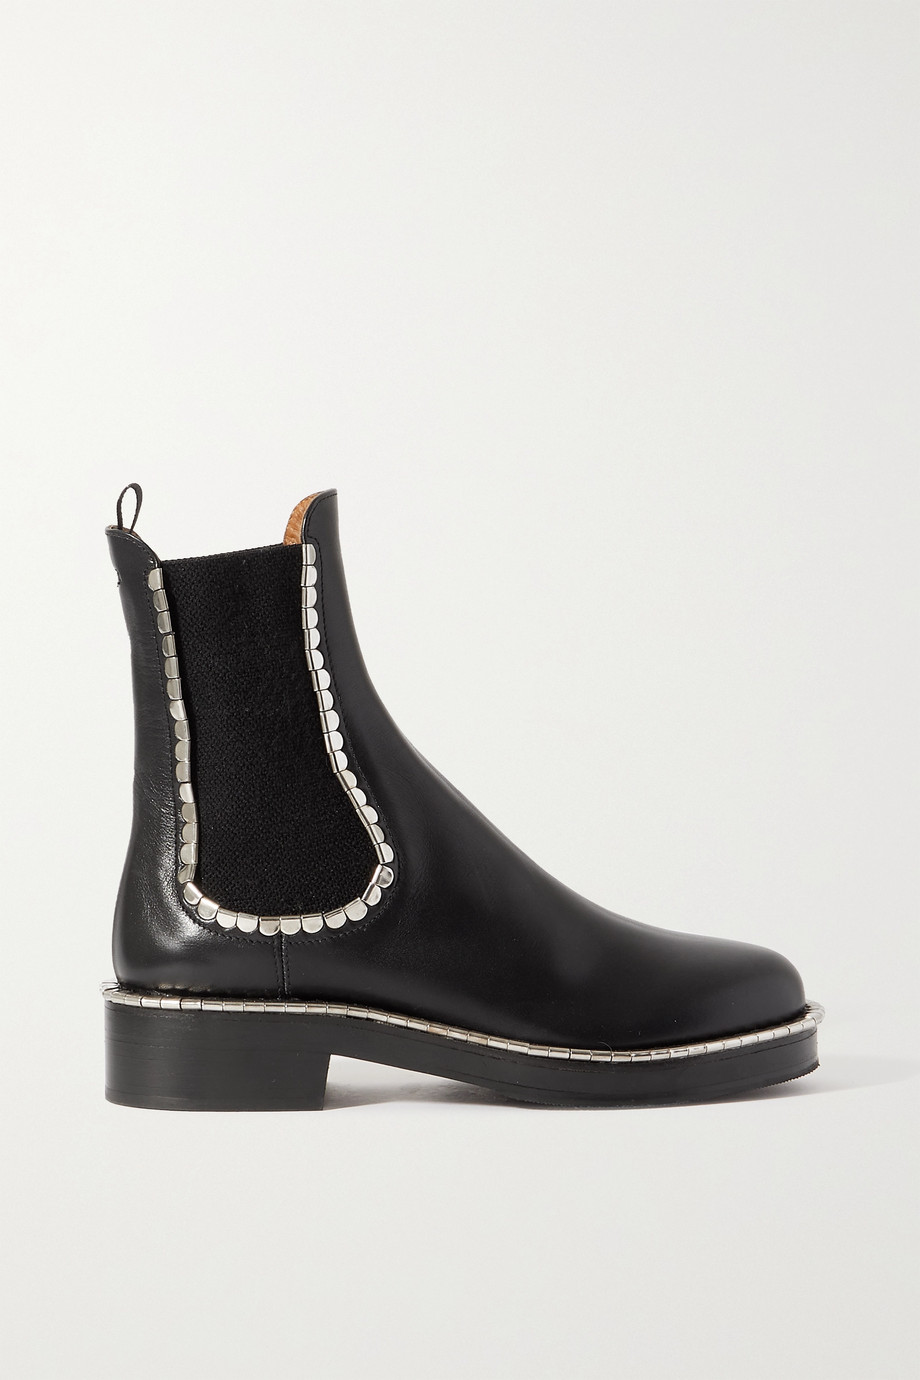 Chloé Idol embellished leather Chelsea boots